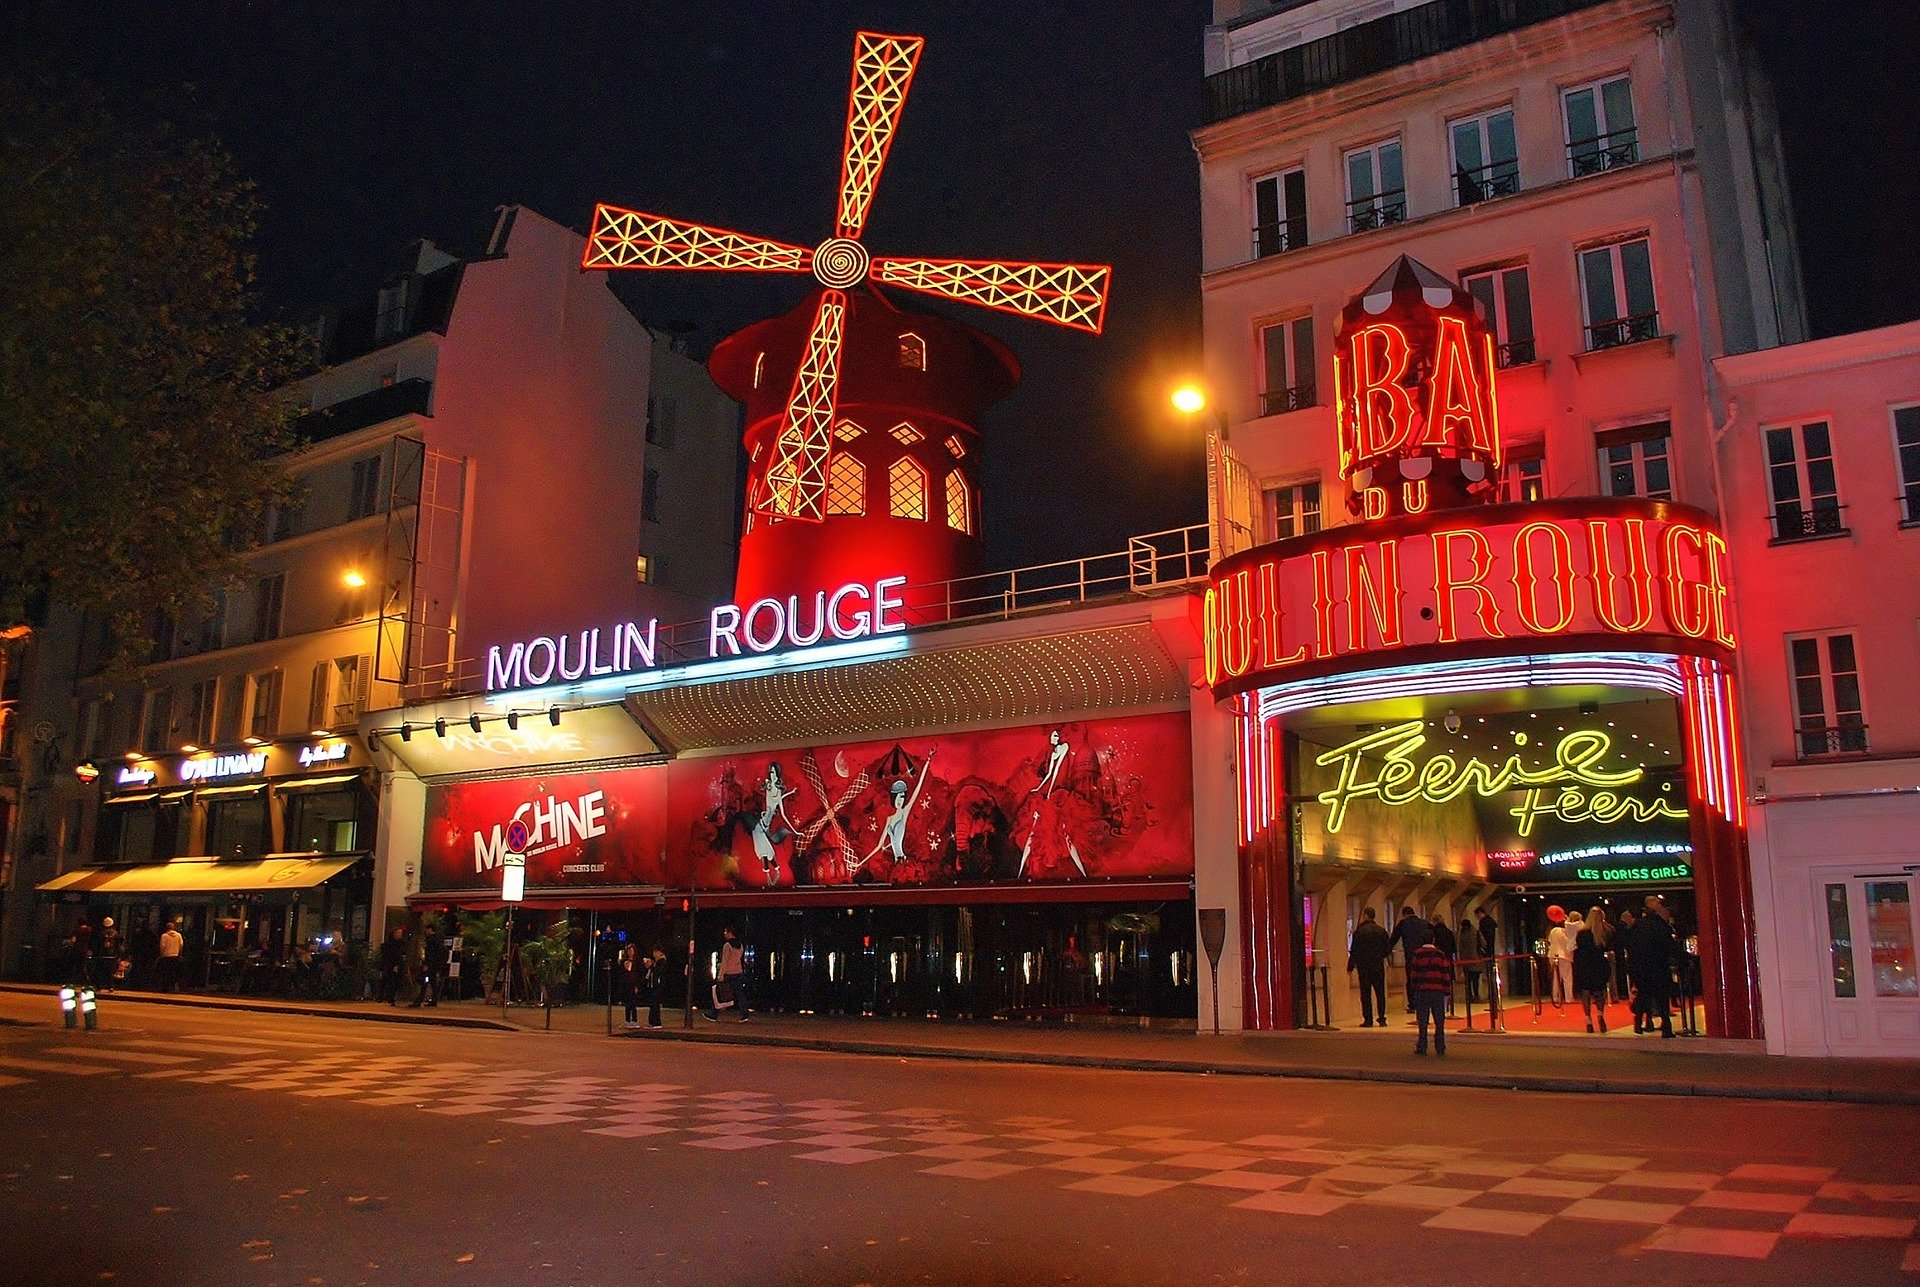 531/moulin-rouge-1050325_1920.jpg